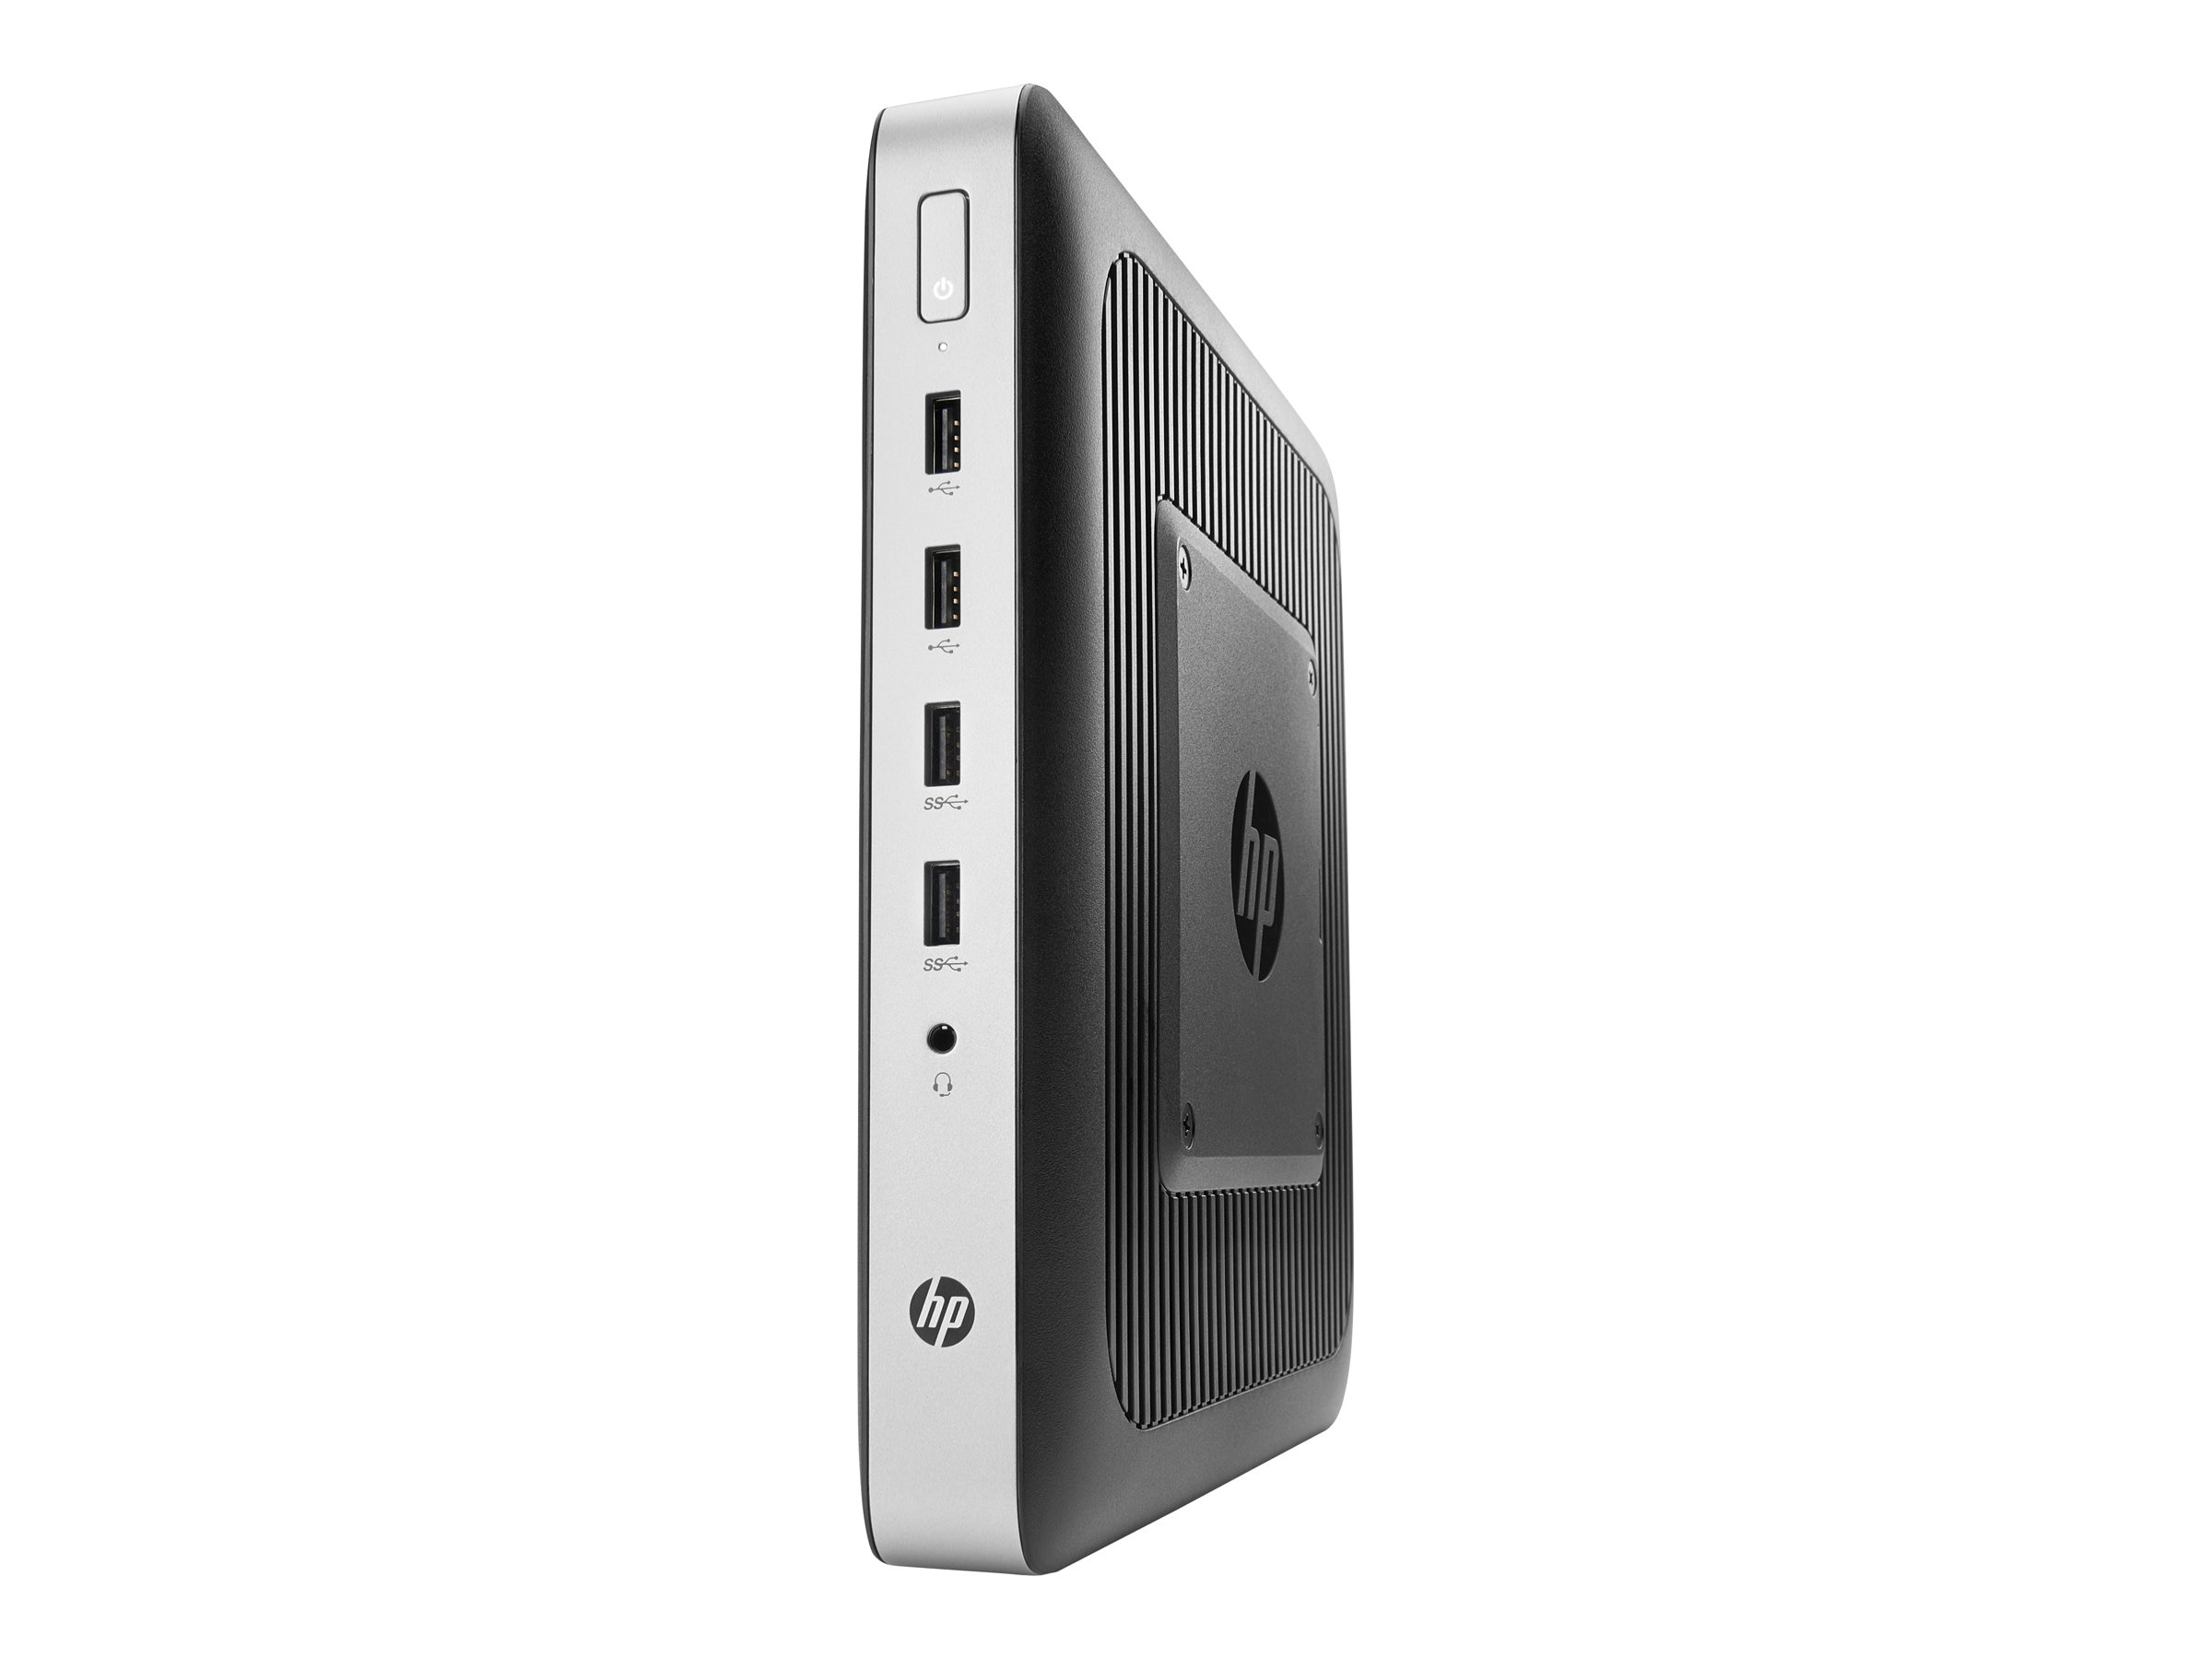 HP t630 Thin Client AMD GX-420GI 2.0GHz 8GB 16GB Flash R6E GbE VGA SmartZero